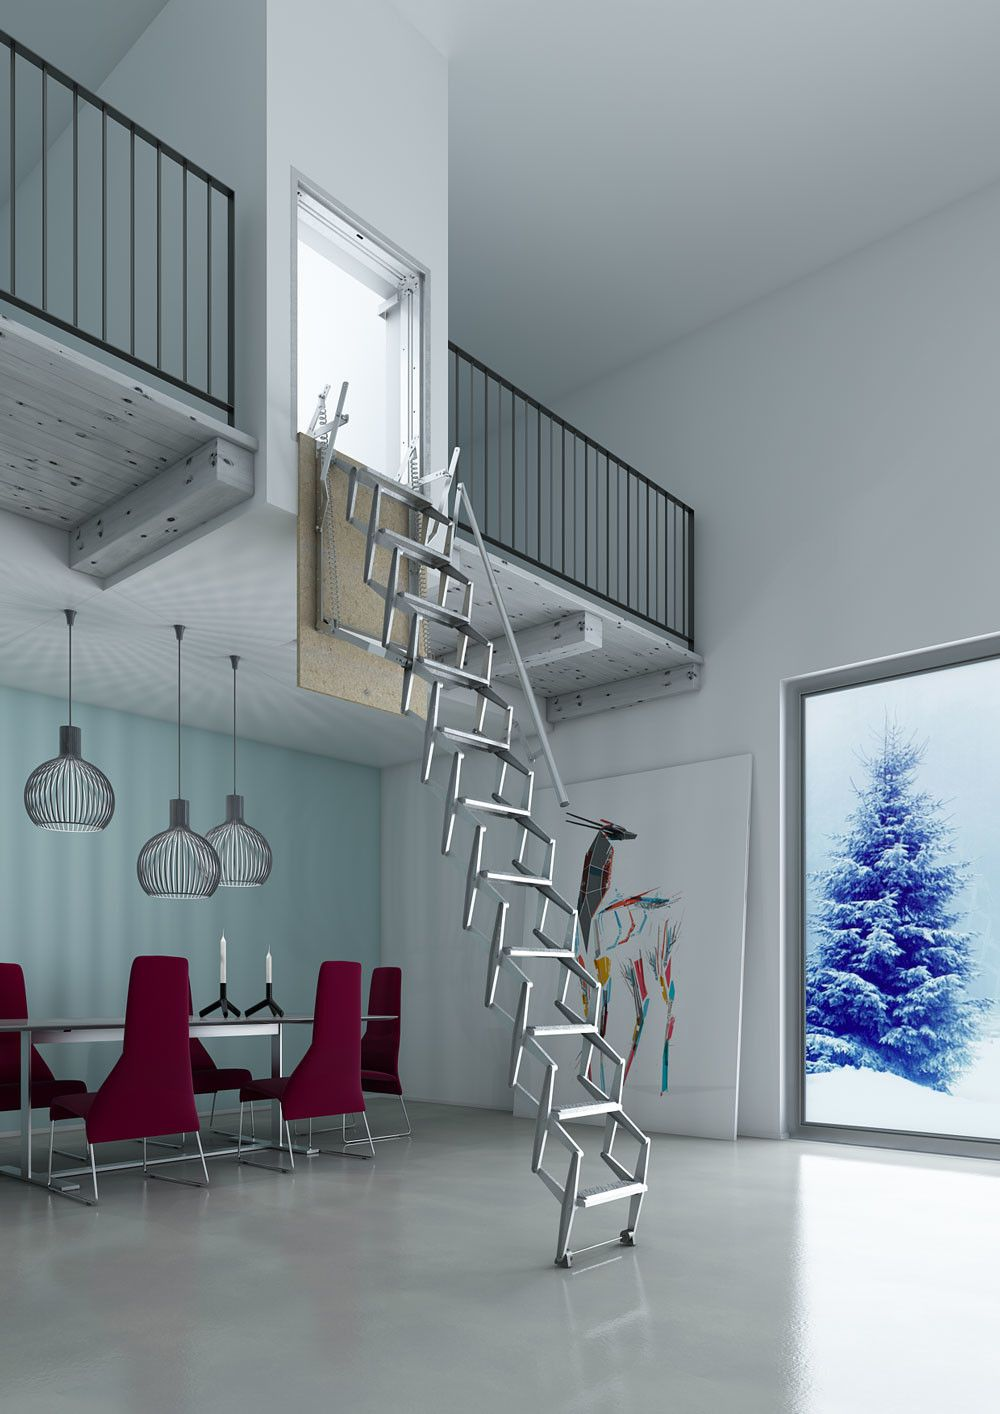 Escalera plegable para hueco en pared gana un nuevo espacio escaleras escamoteables en kit - Escalera plegable altillo ...